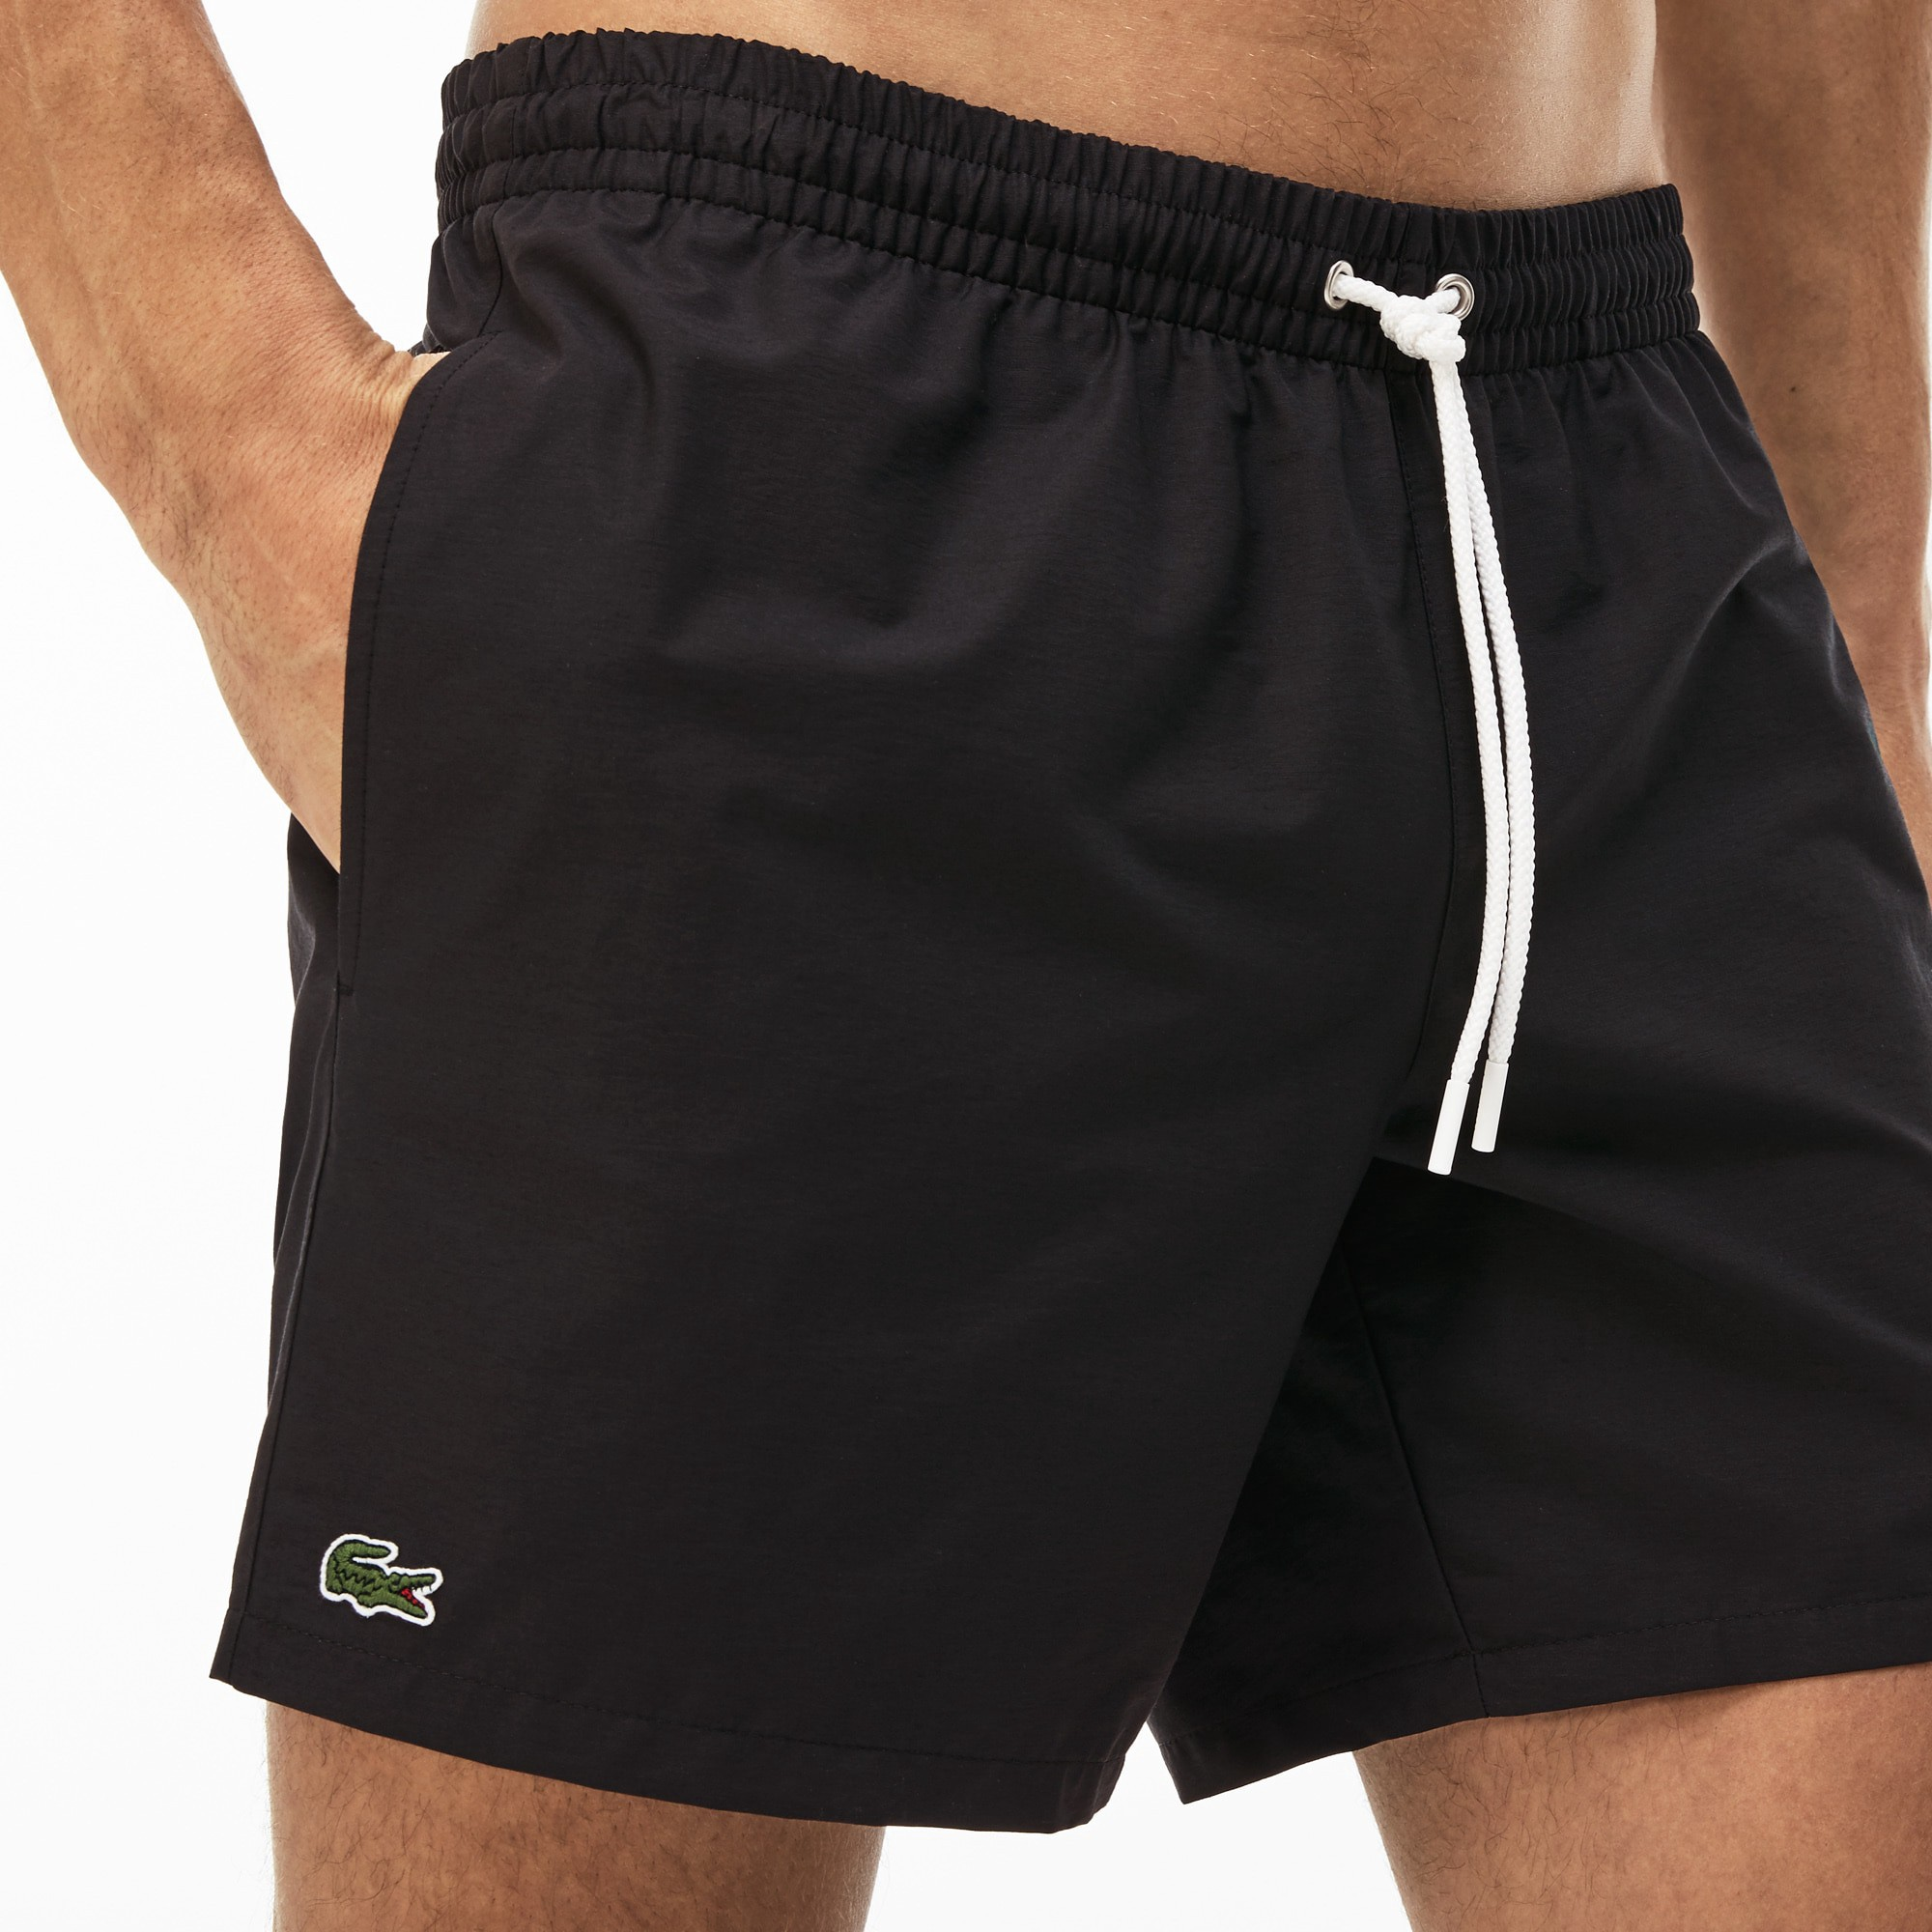 f47832919d757 Lacoste Men's Taffeta Swim Trunks - Black/Navy L Green | Products ...